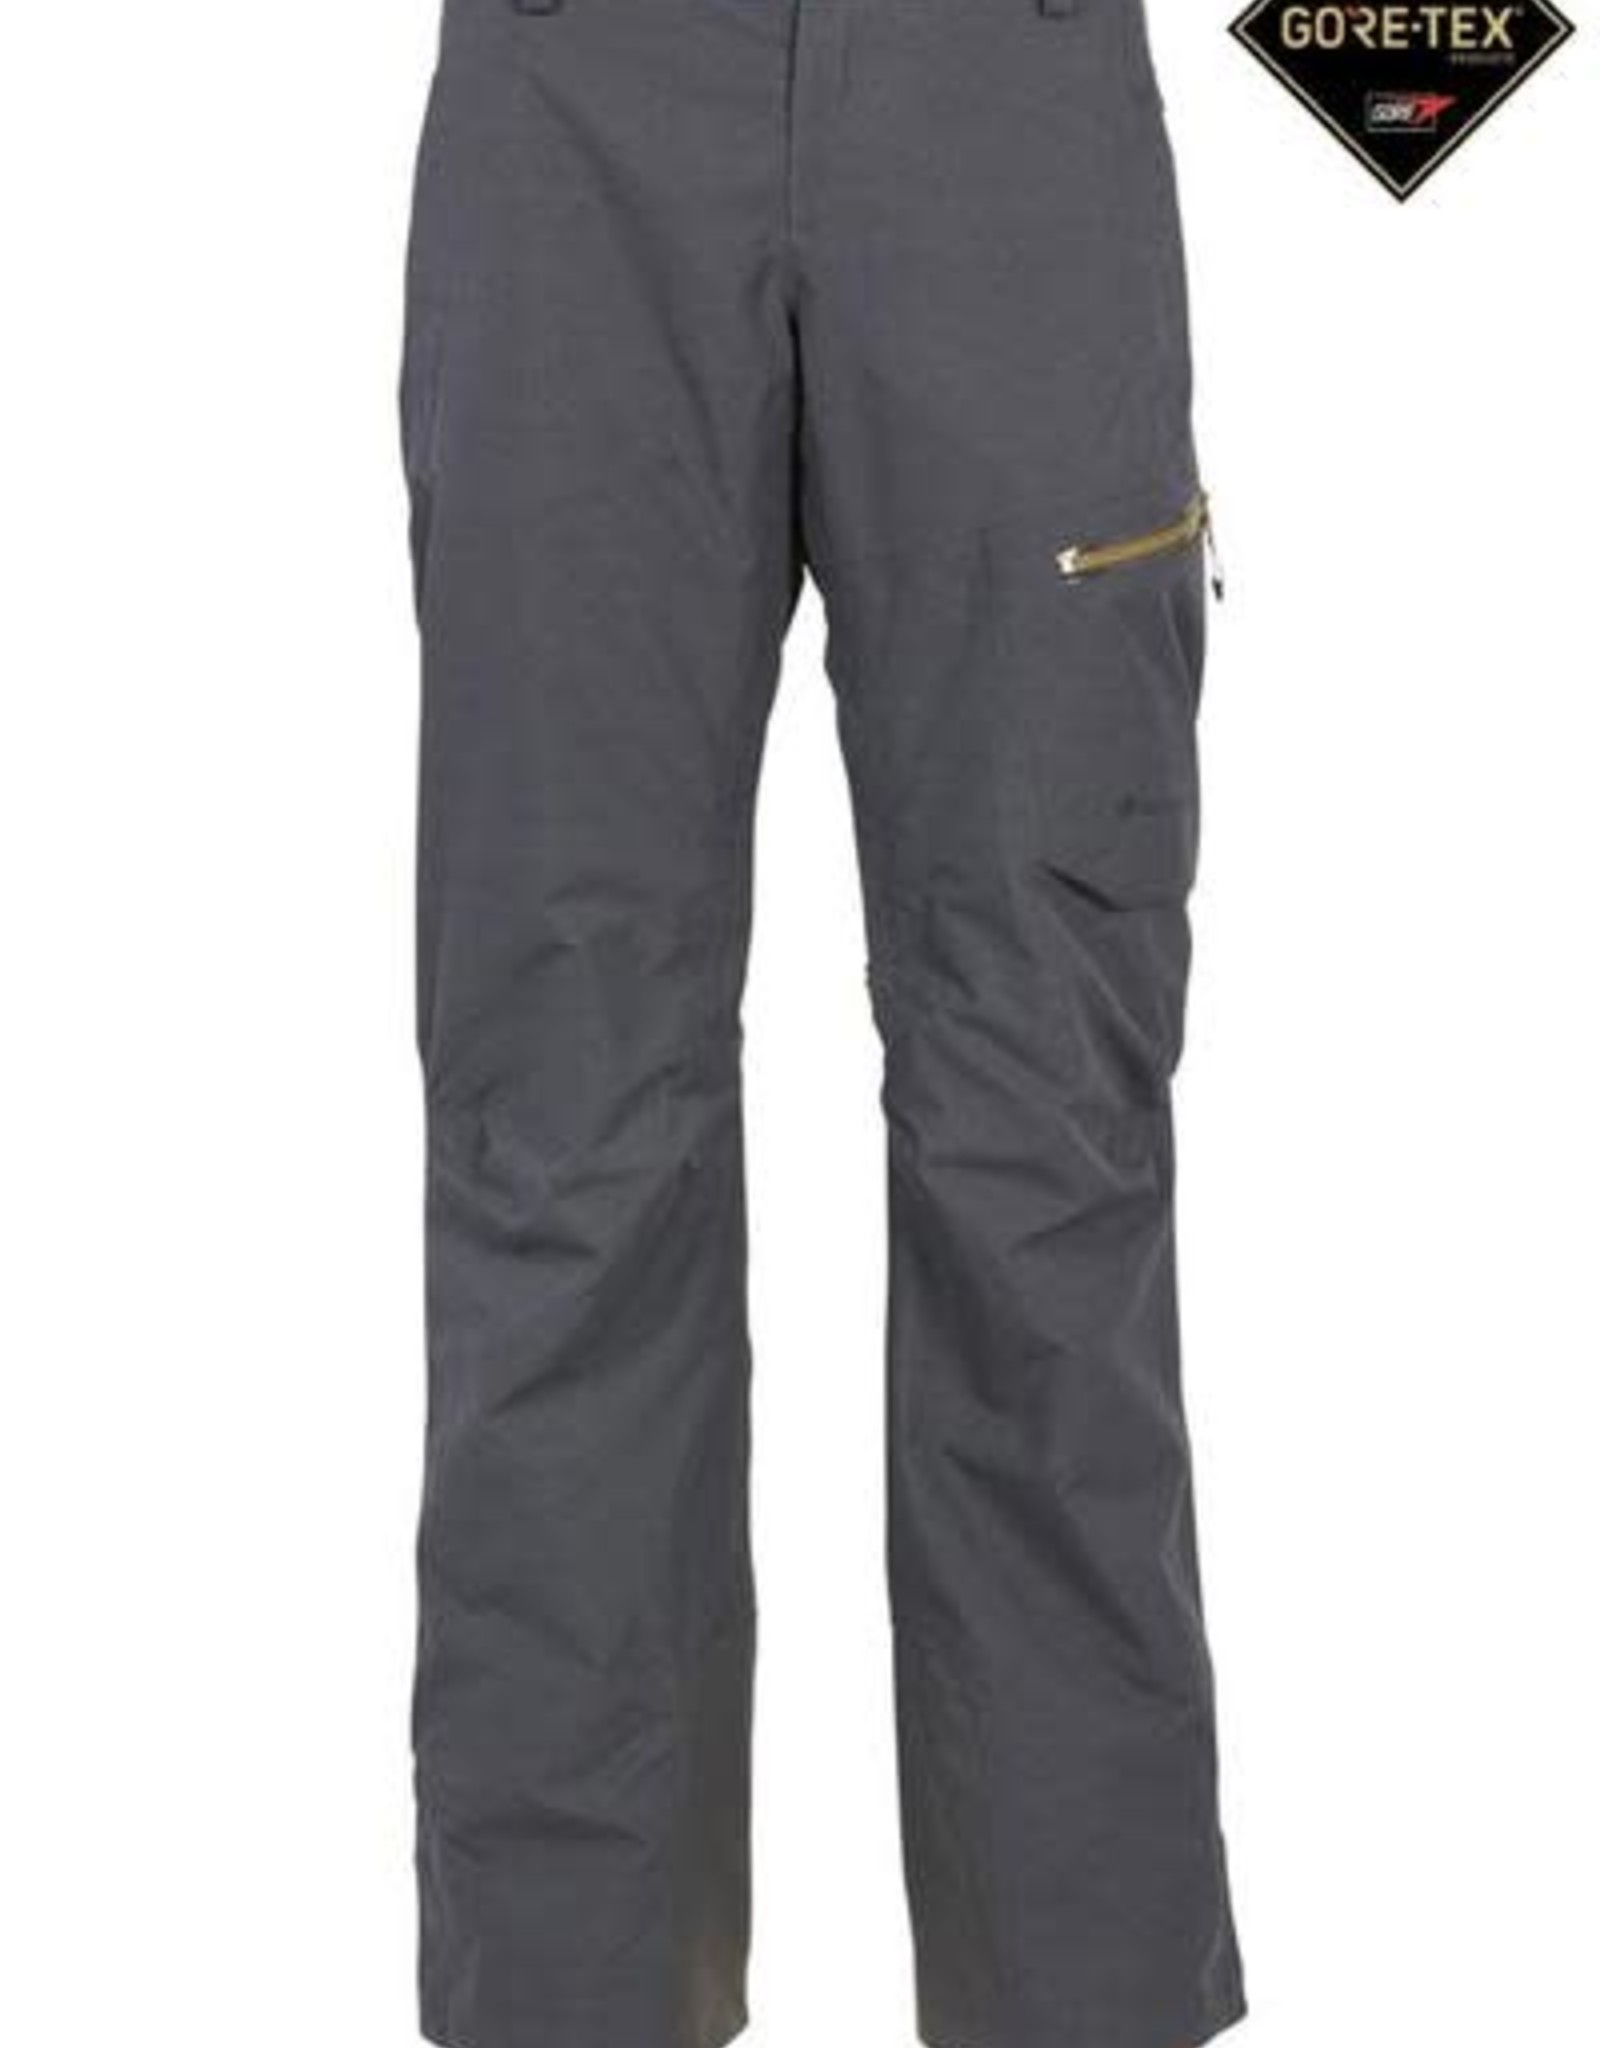 686 2020 686 Women's GLCR GRTX Utopia Insulated Pant Charcoal